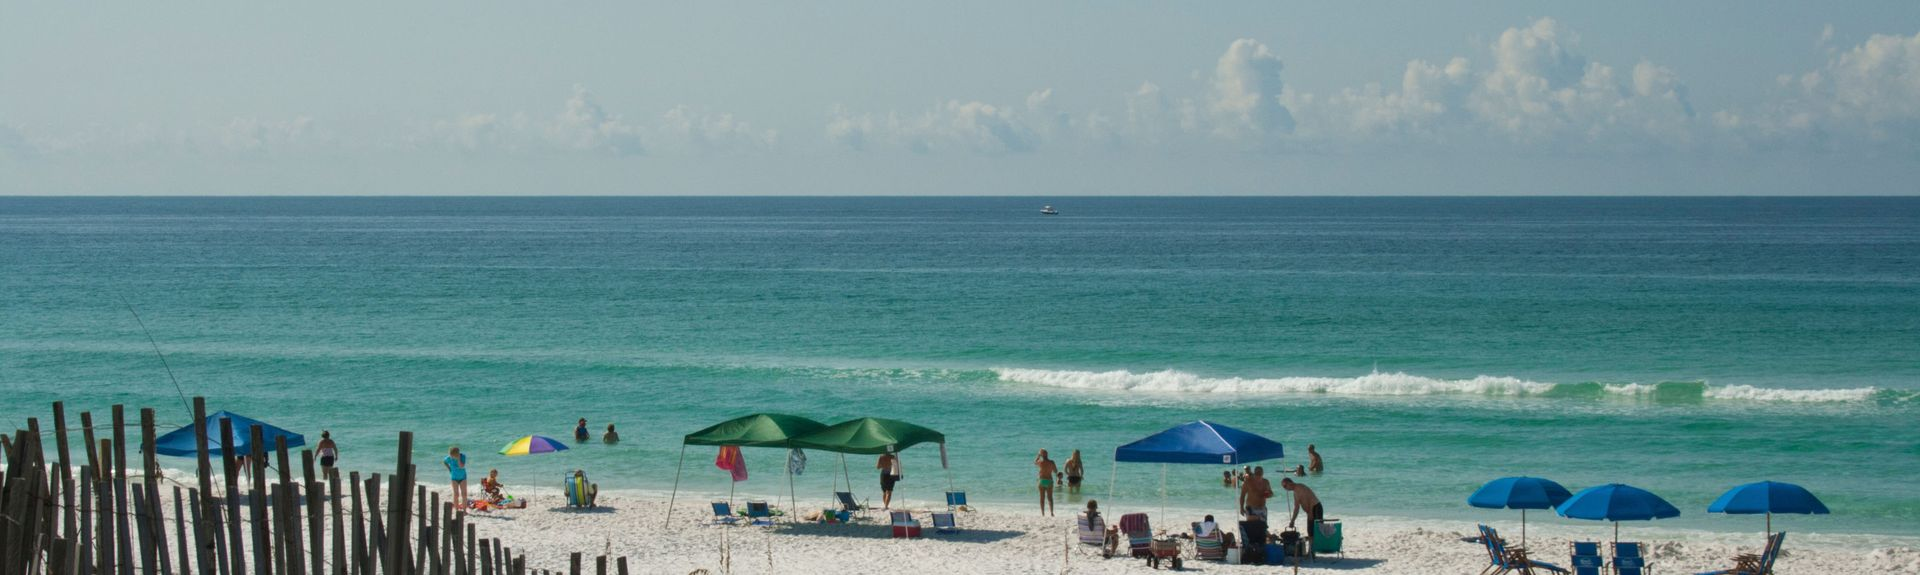 Crystal Beach, Destin, Florida, Yhdysvallat